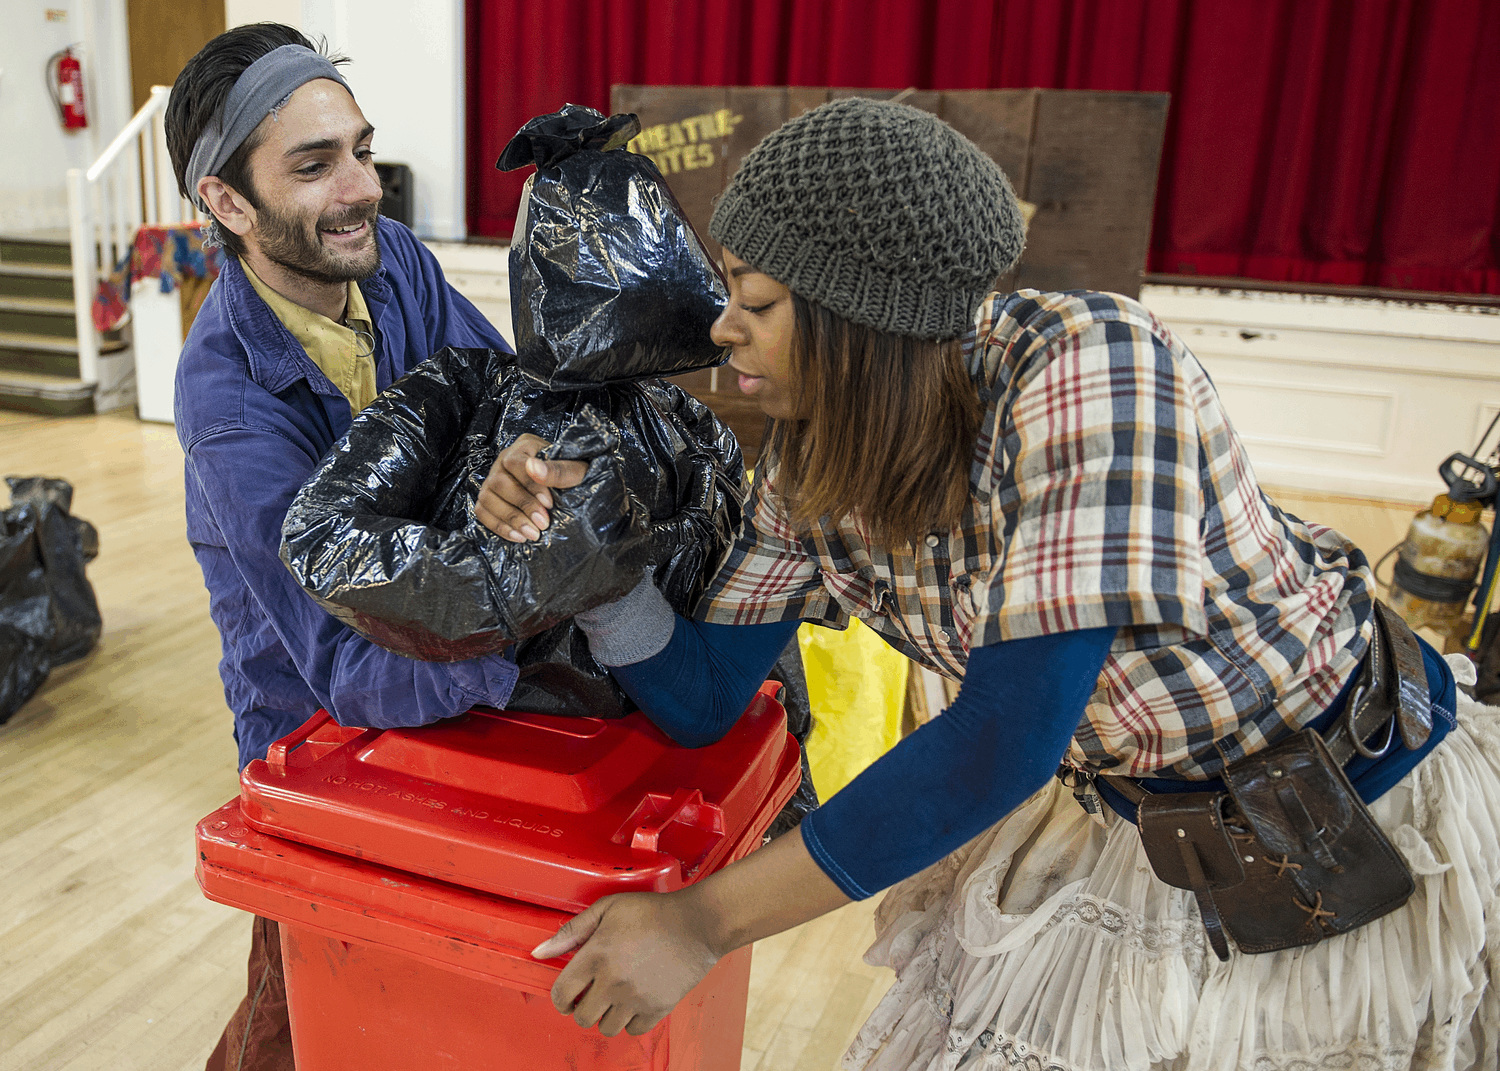 a woman arm wrestles with a puppet made of bin bags.  The puppet is manipulated by a puppeteer and is sitting on top of a wheelie bin